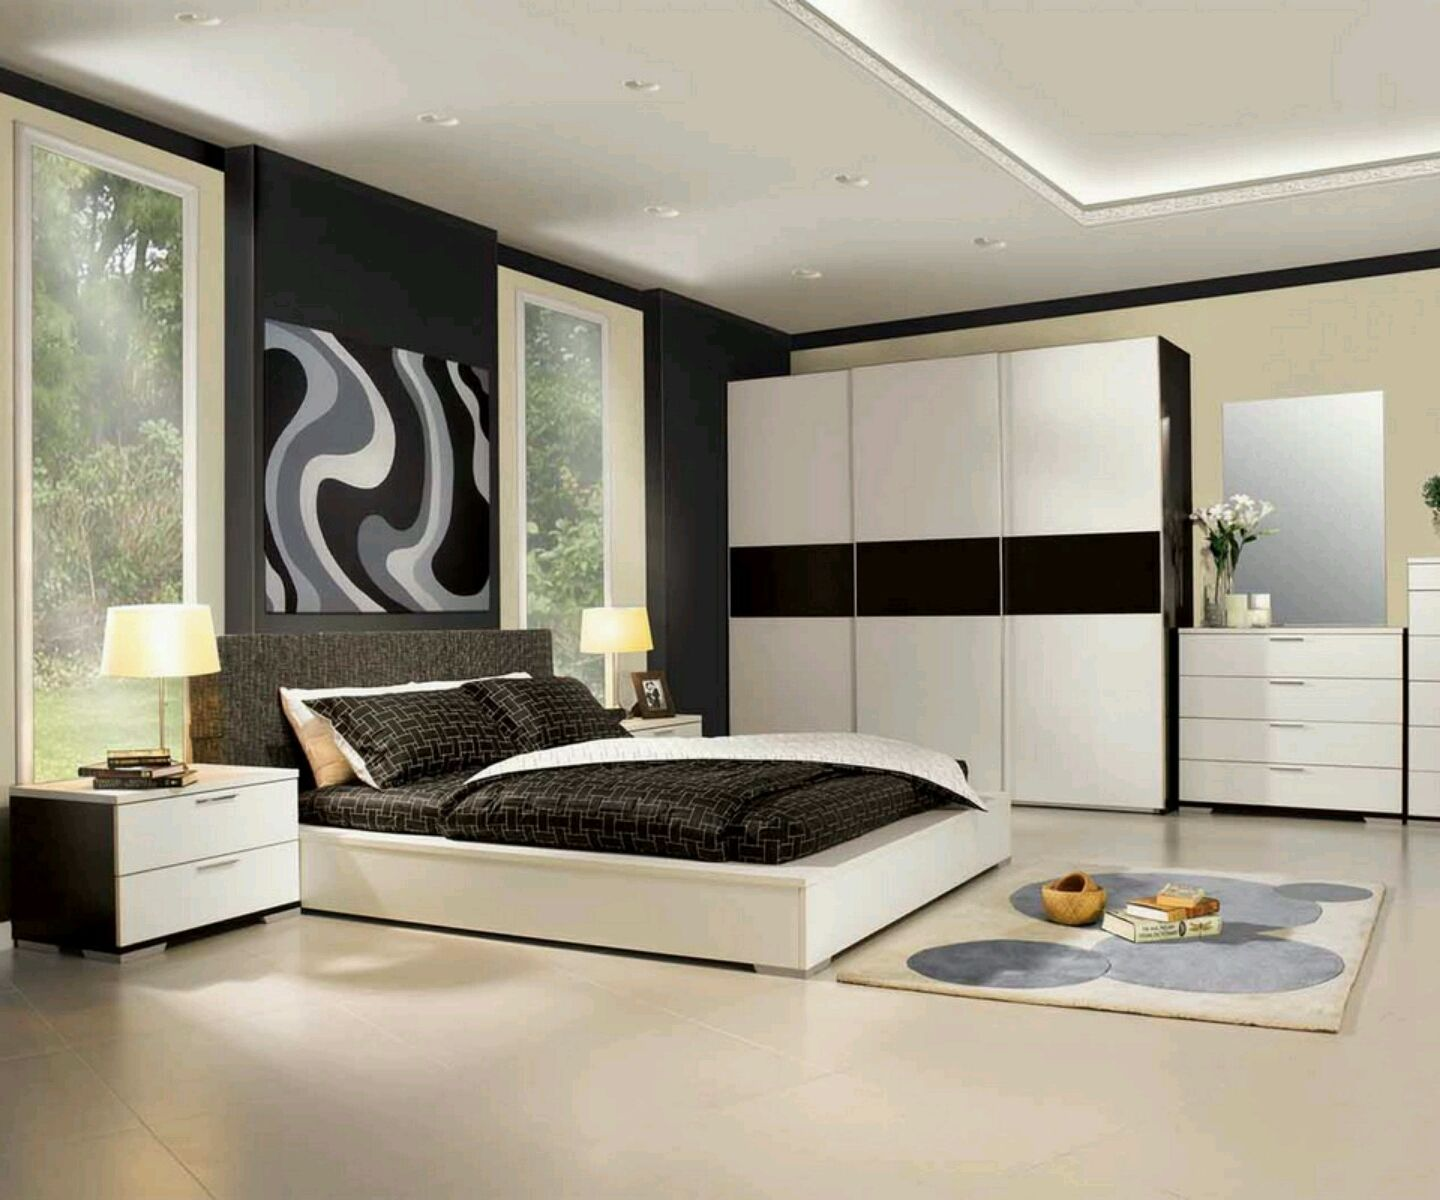 Home Furniture Designs Gorgeous Modern Bedroom Furniture Design For More Pictures And Design Ideas . 2017